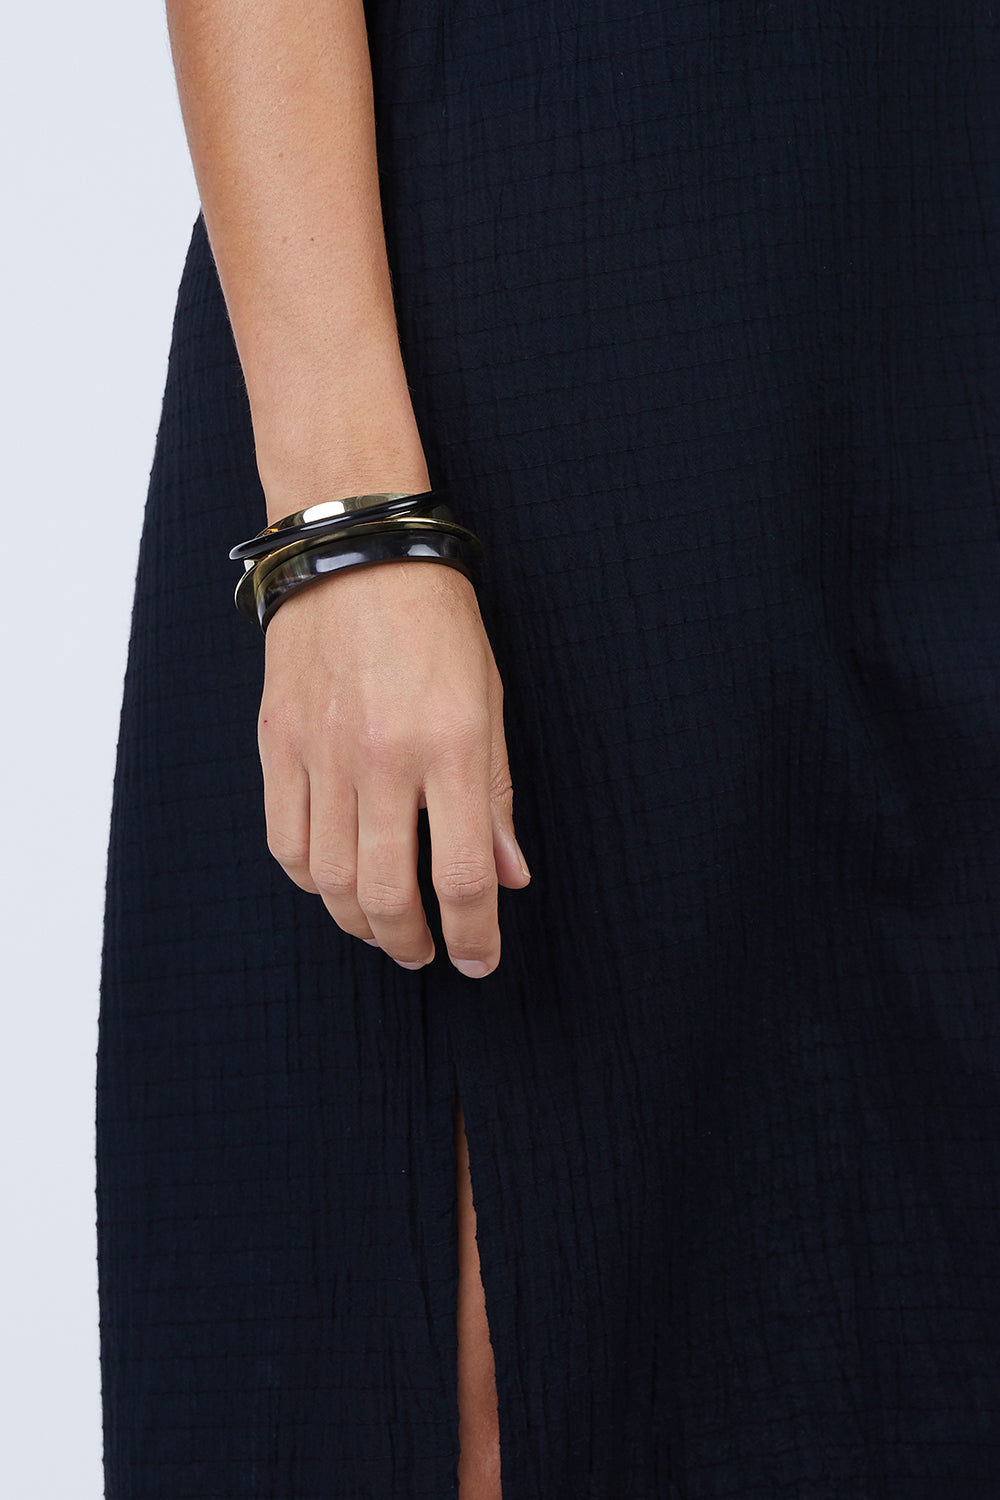 SOKO JEWELRY Stacked Mixed Material Bracelets - Brass/Black Jewelry | Brass/Black| Stacked Mixed Material Bracelets - Brass/Black Brass & black bracelet  Made in Kenya  Front View